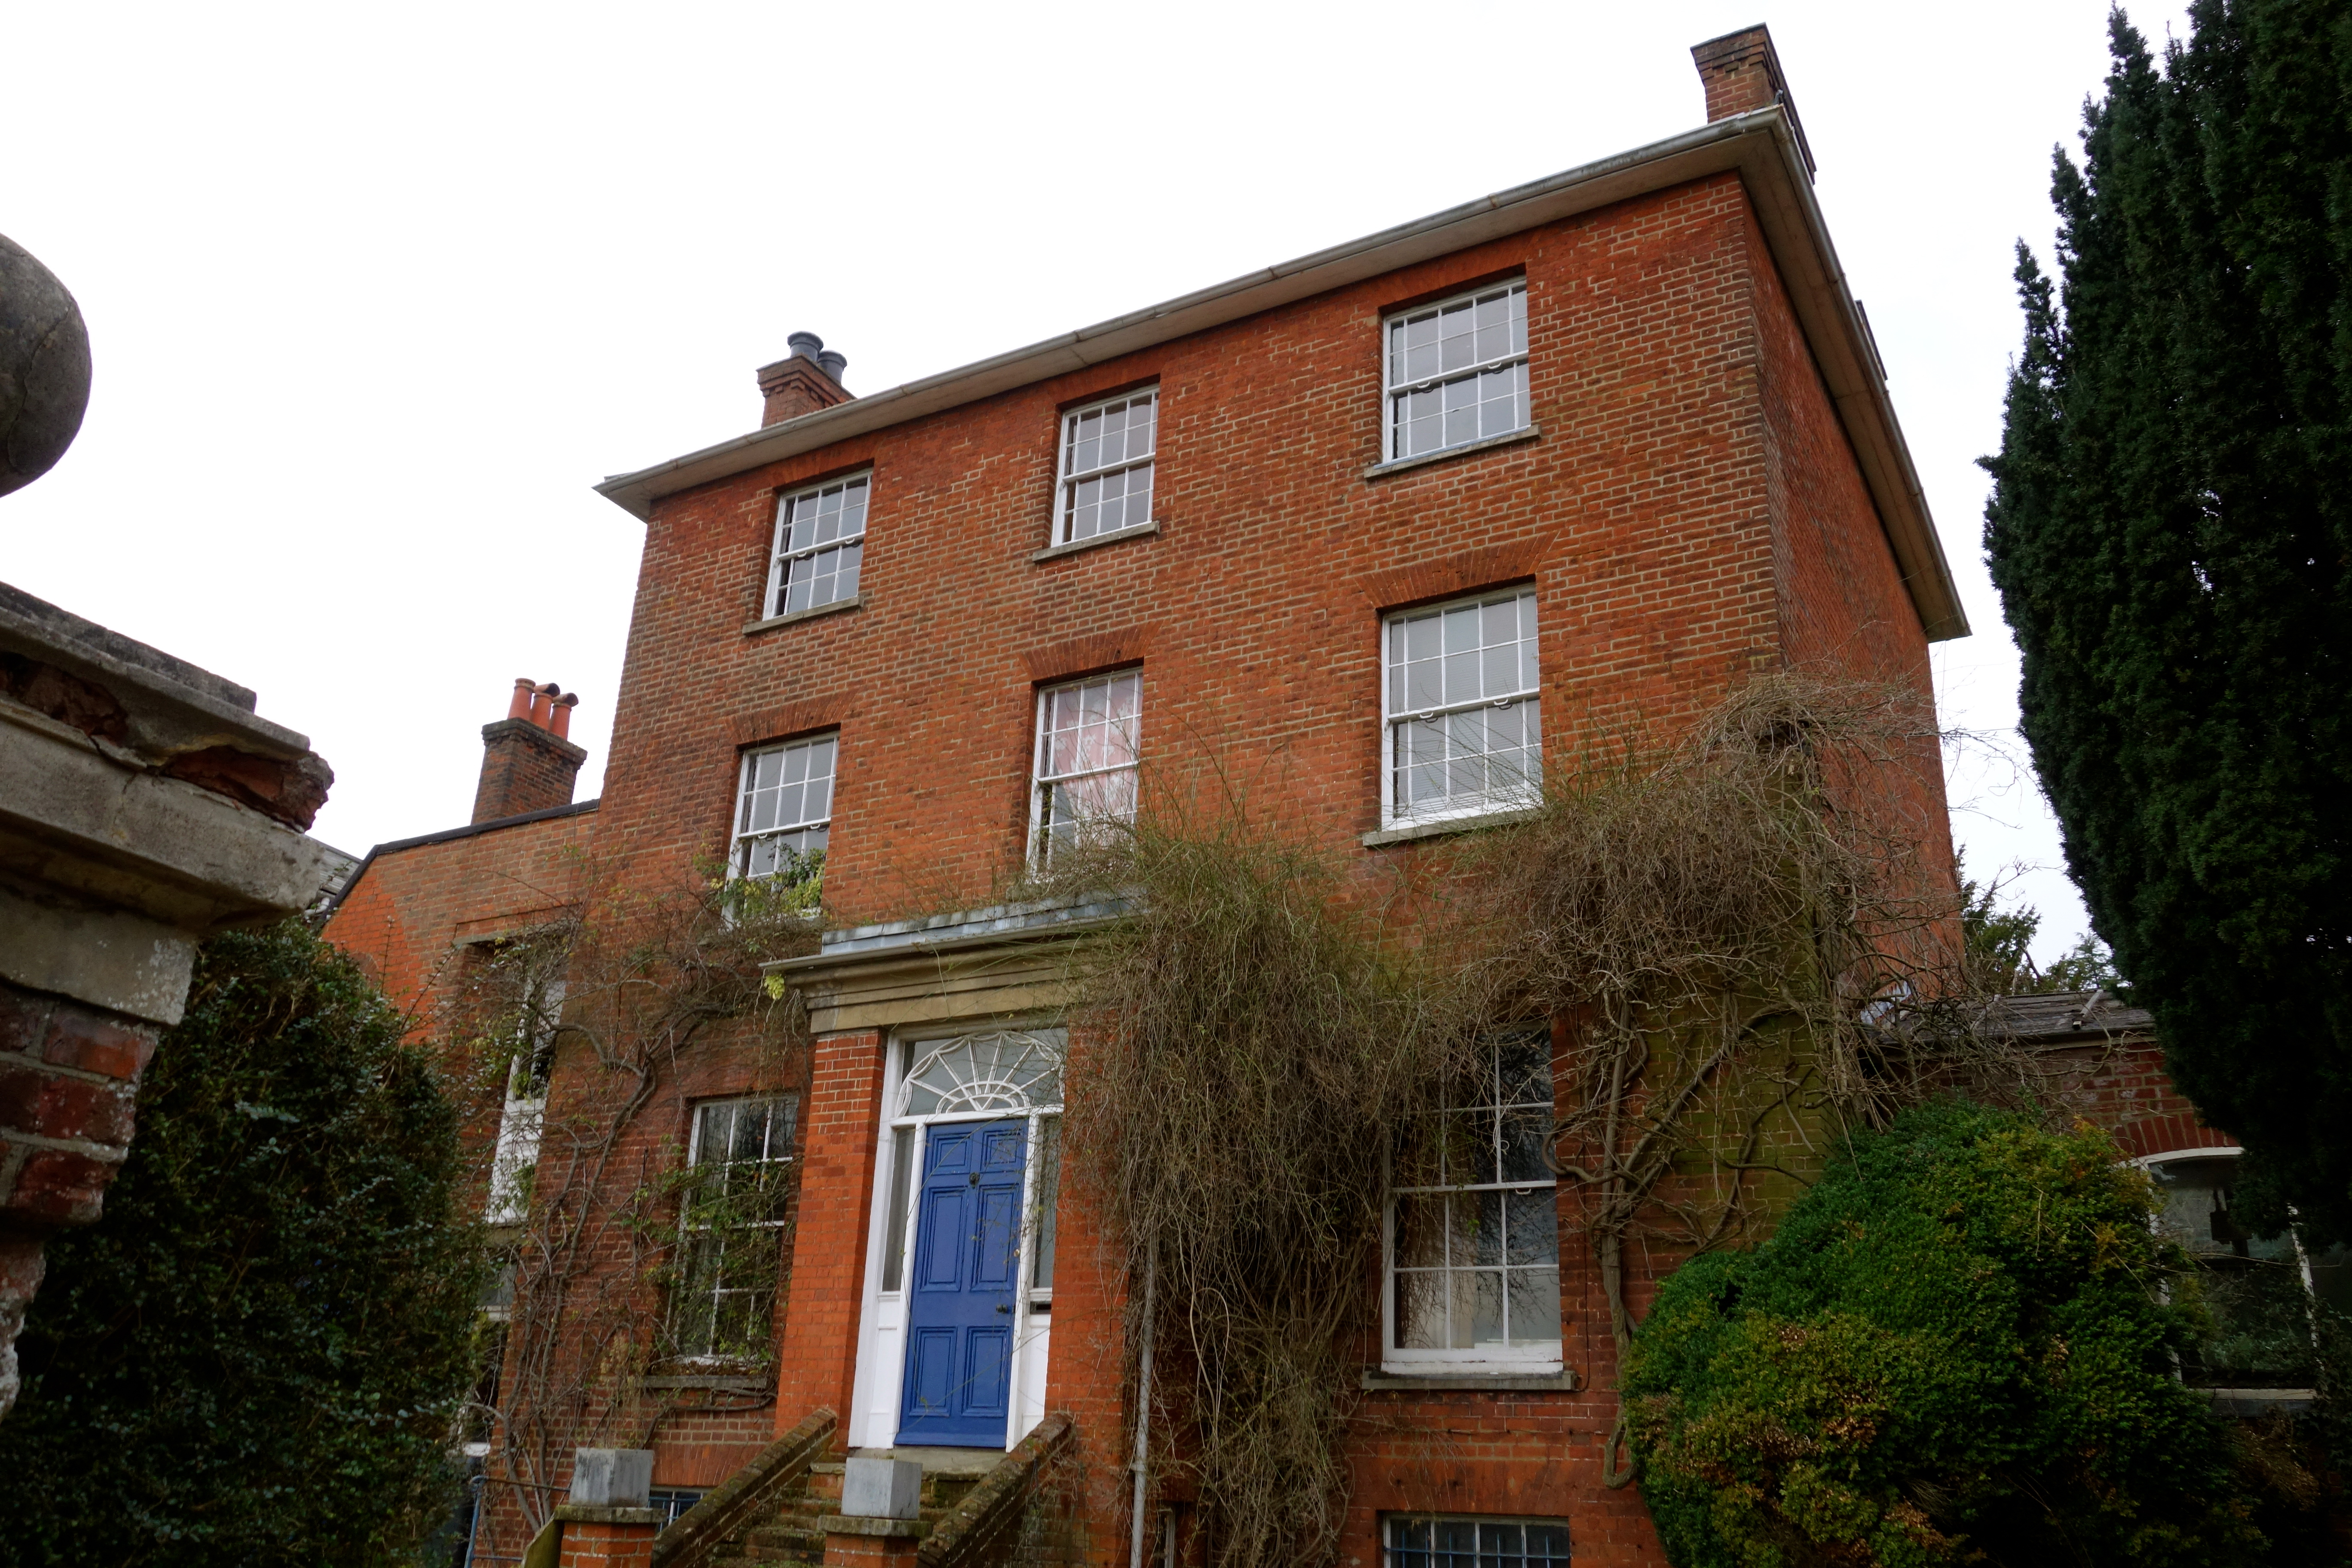 Lewis Carroll House in Guildford